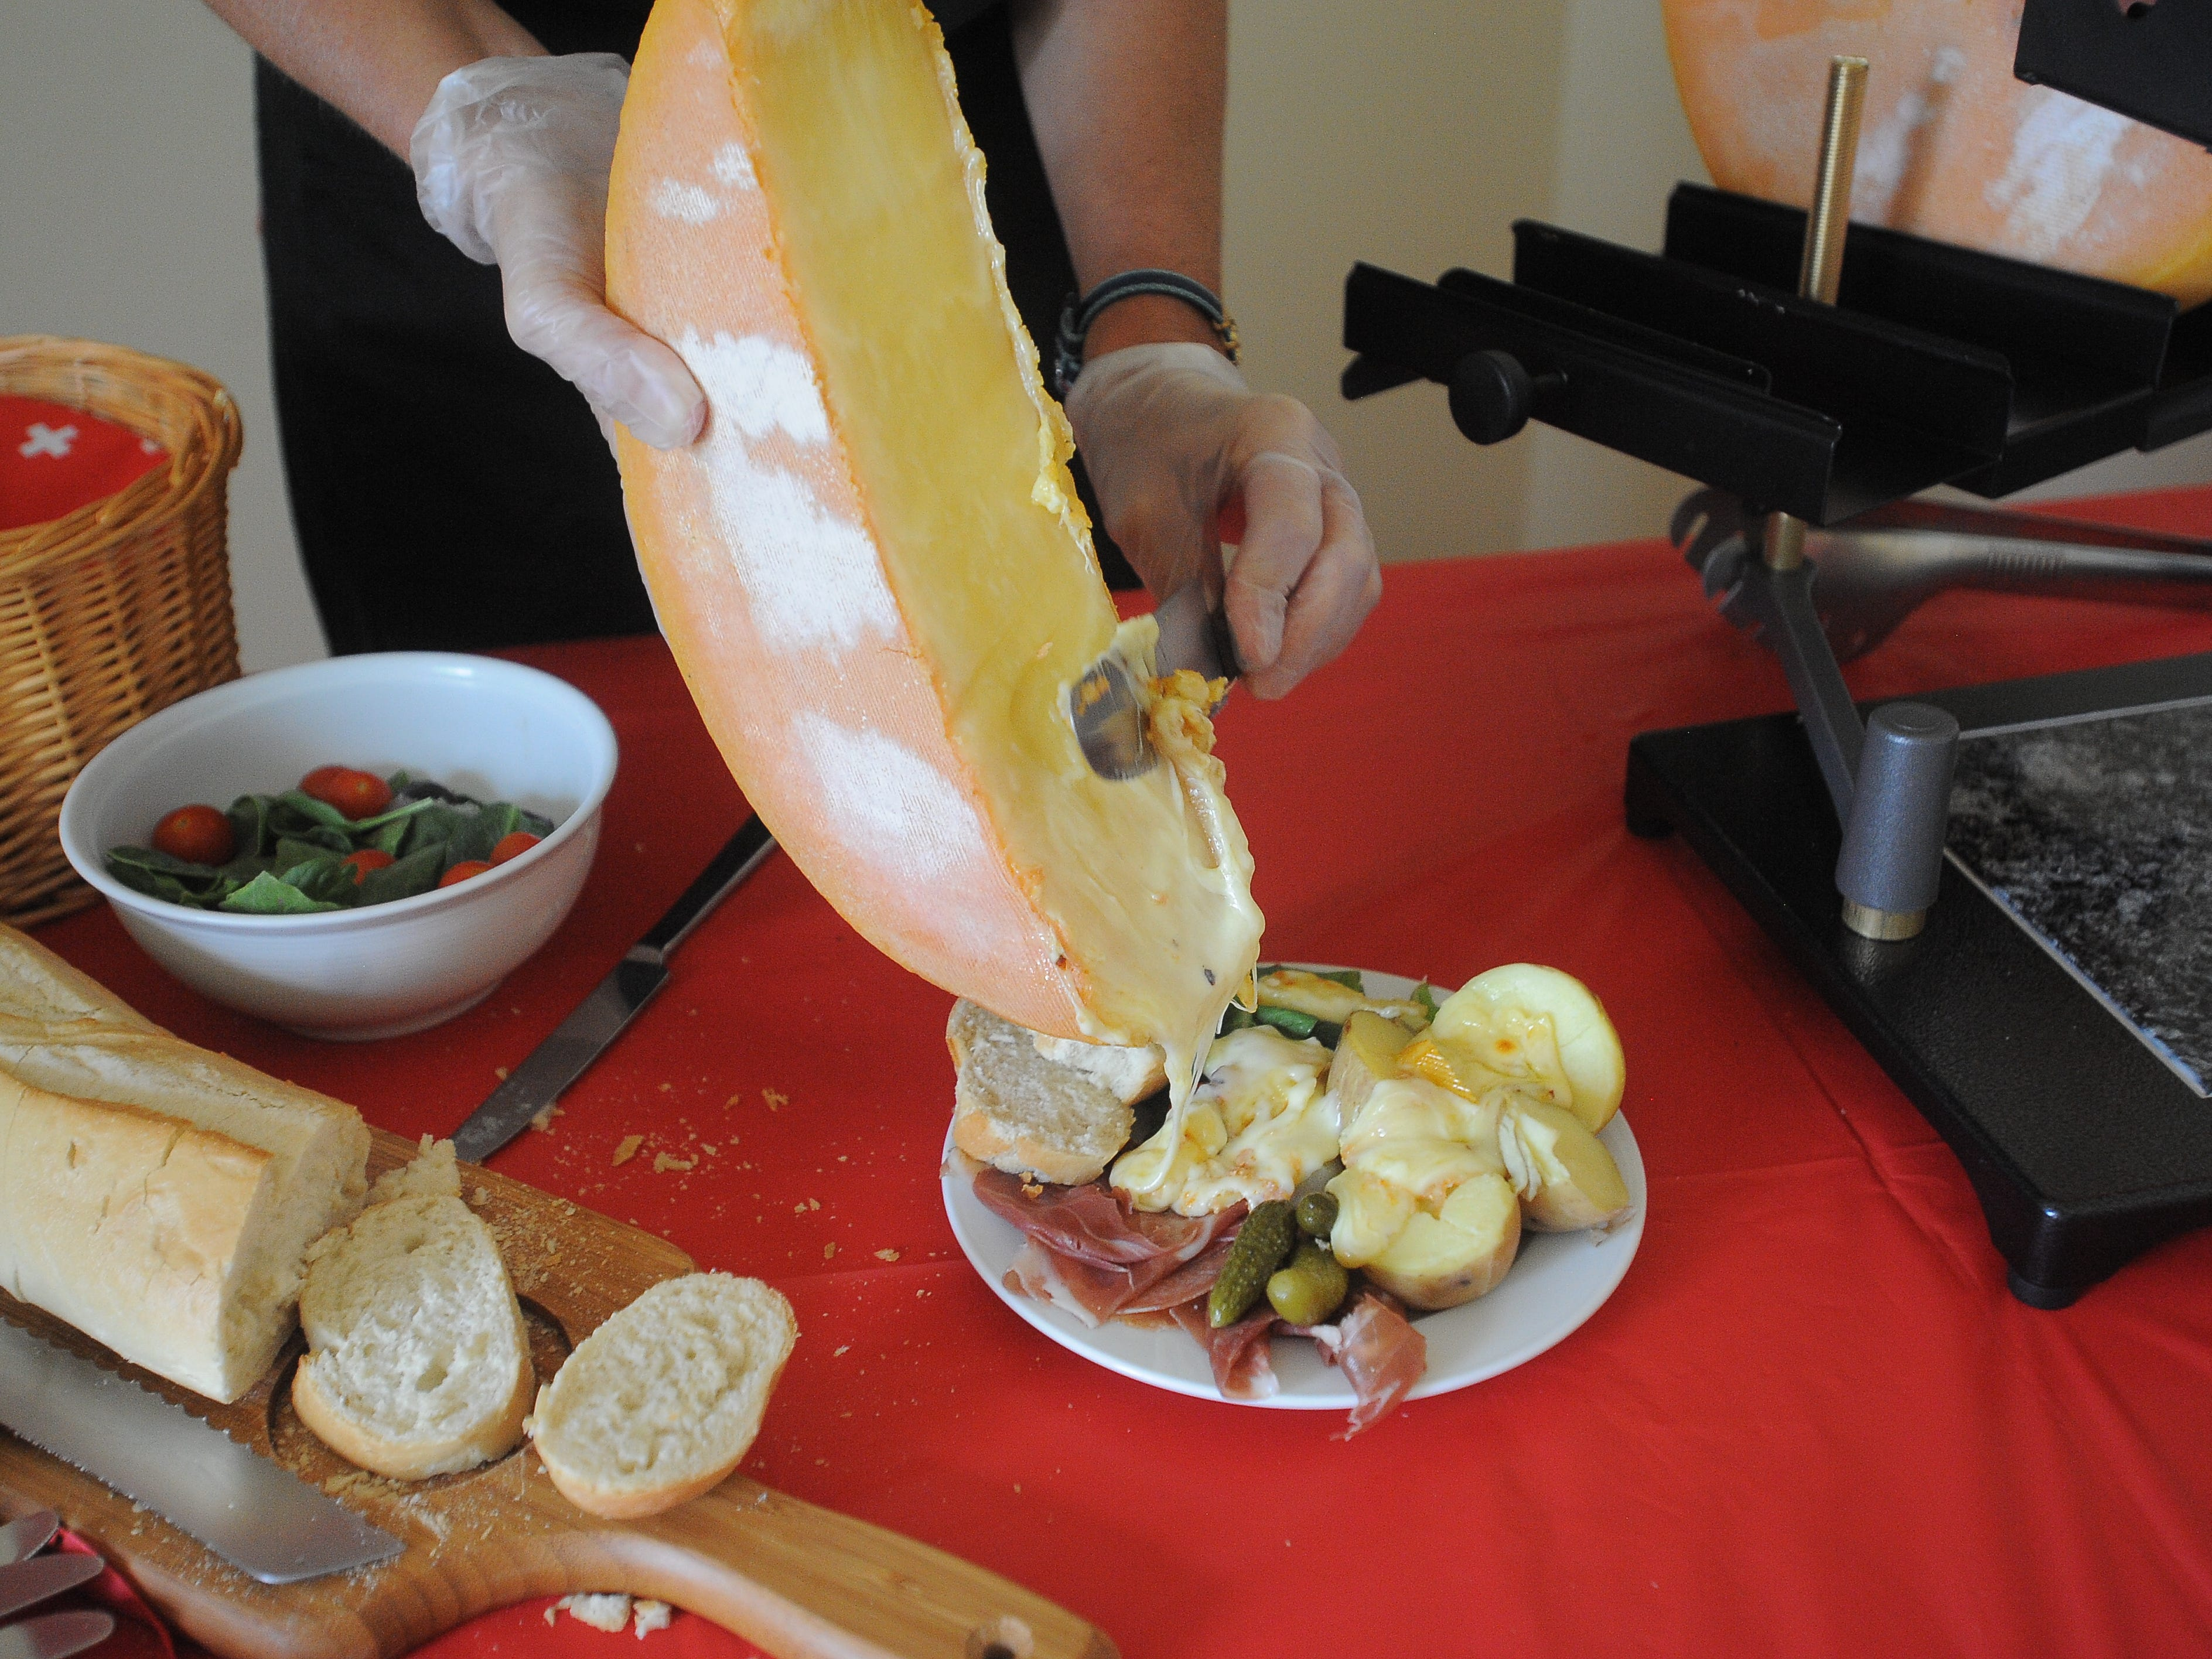 Melted cheese? Yes, please. Sioux Falls business serves up Swiss delicacy